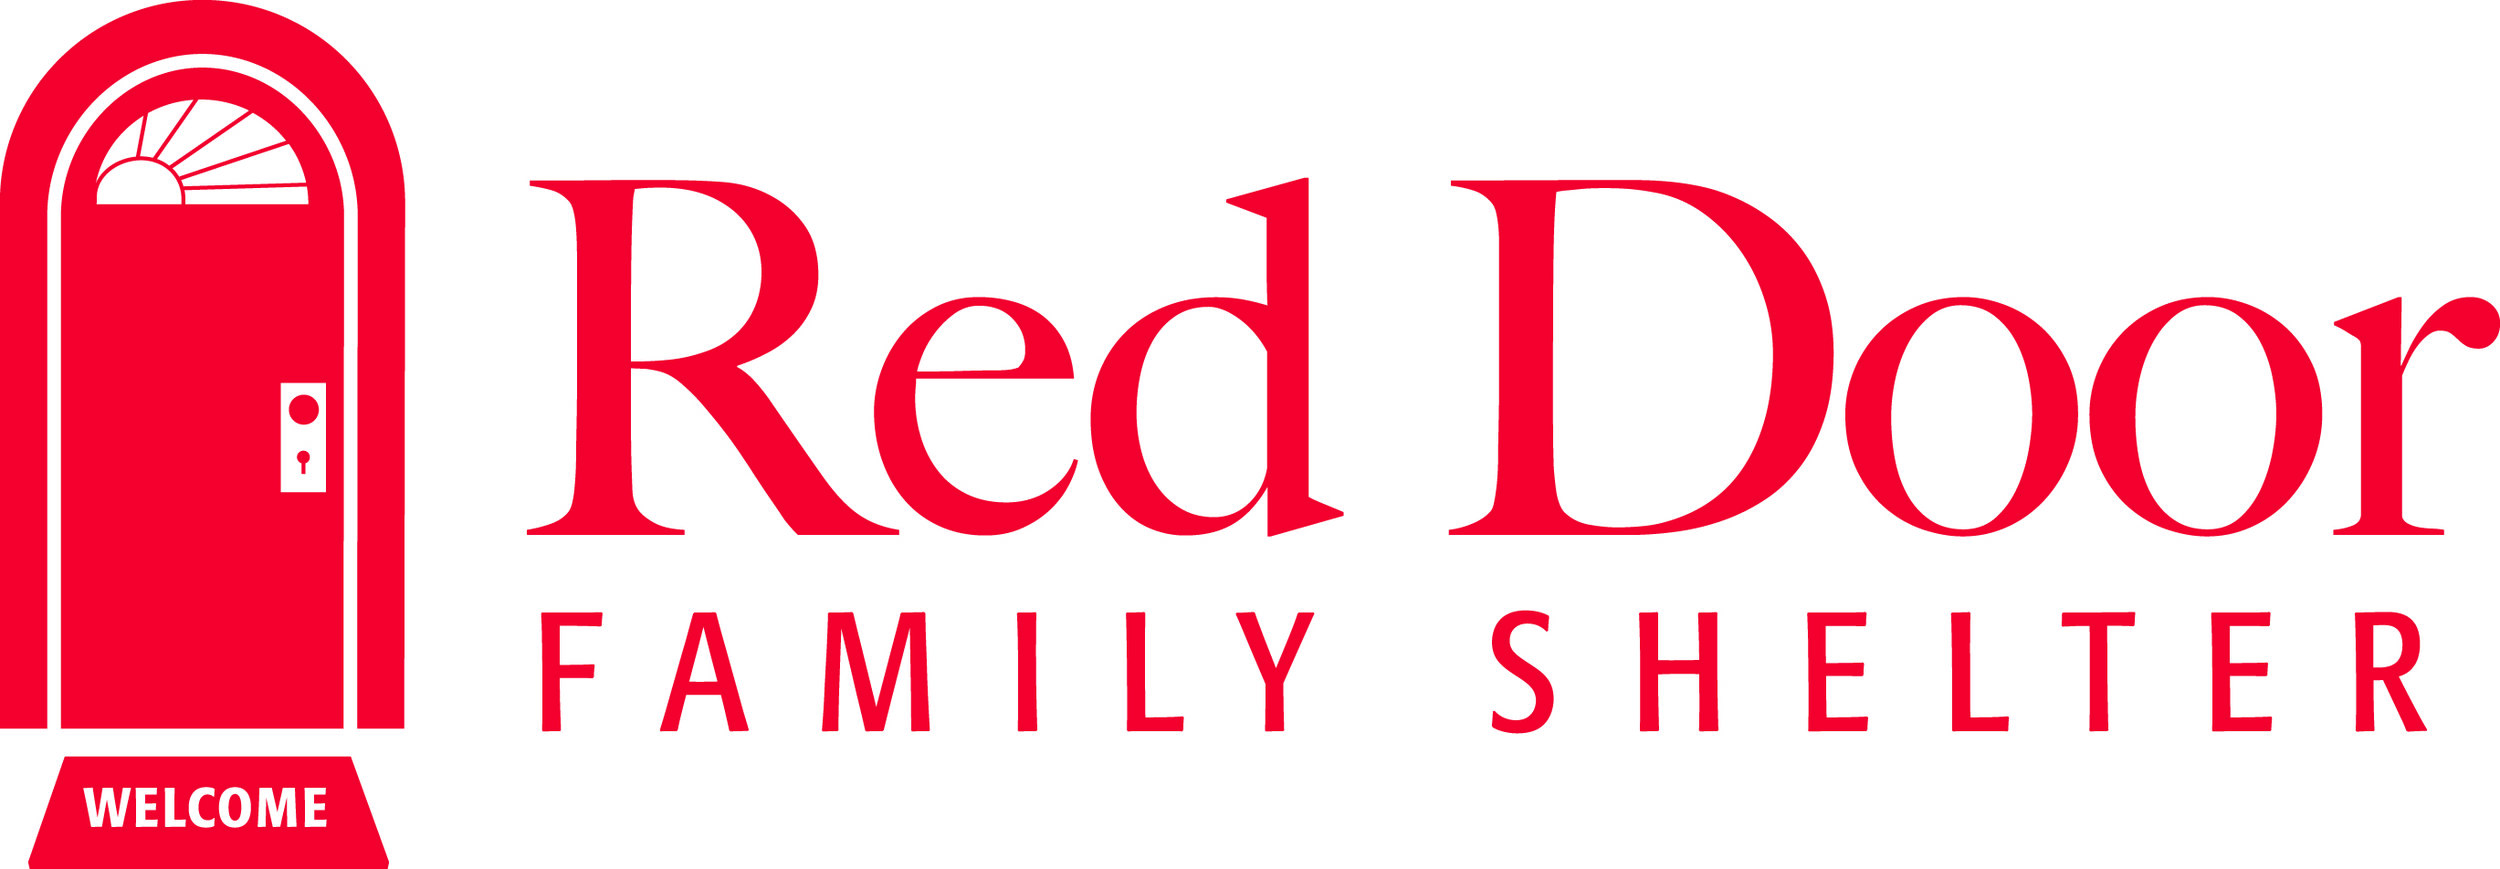 RED Red_door_Logo_Print copy.jpg